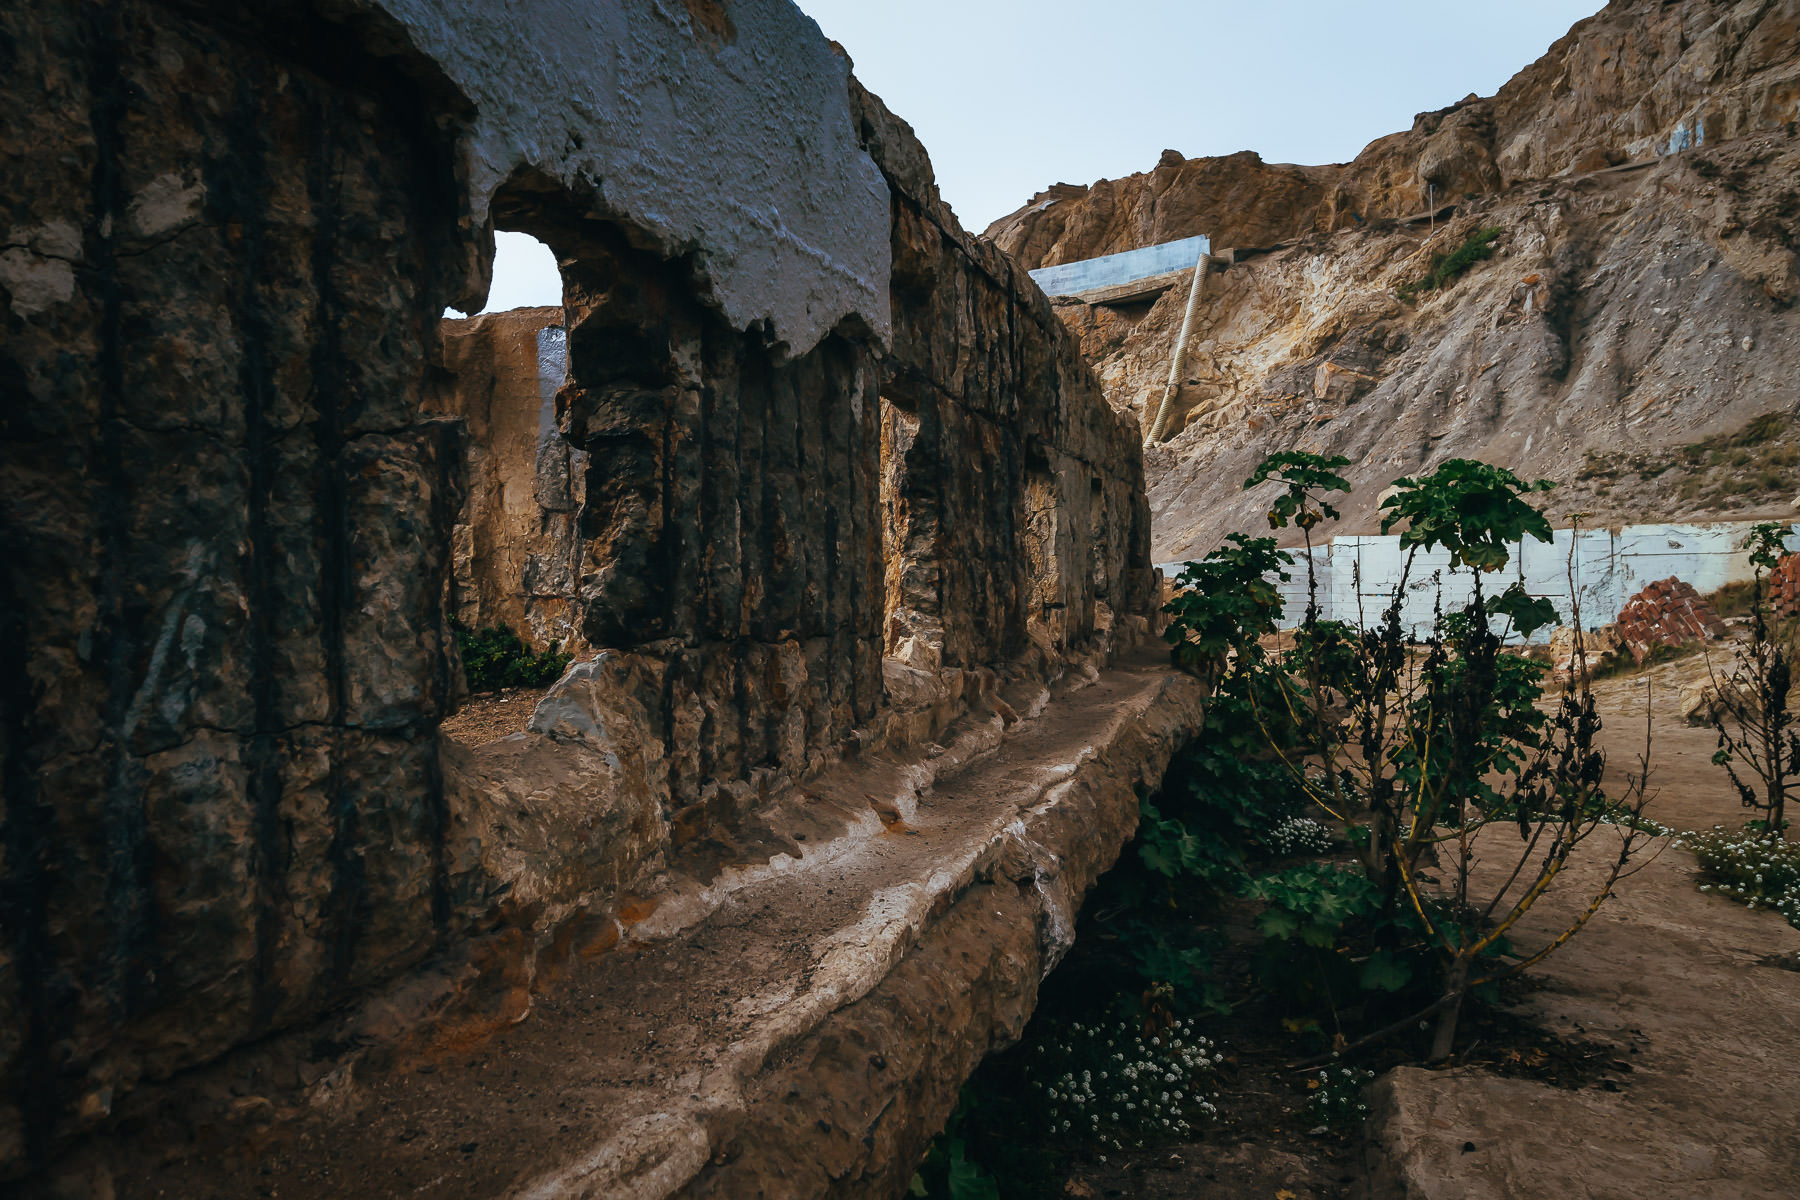 Detail of the ruins of San Francisco's Sutro Baths at Lands End.